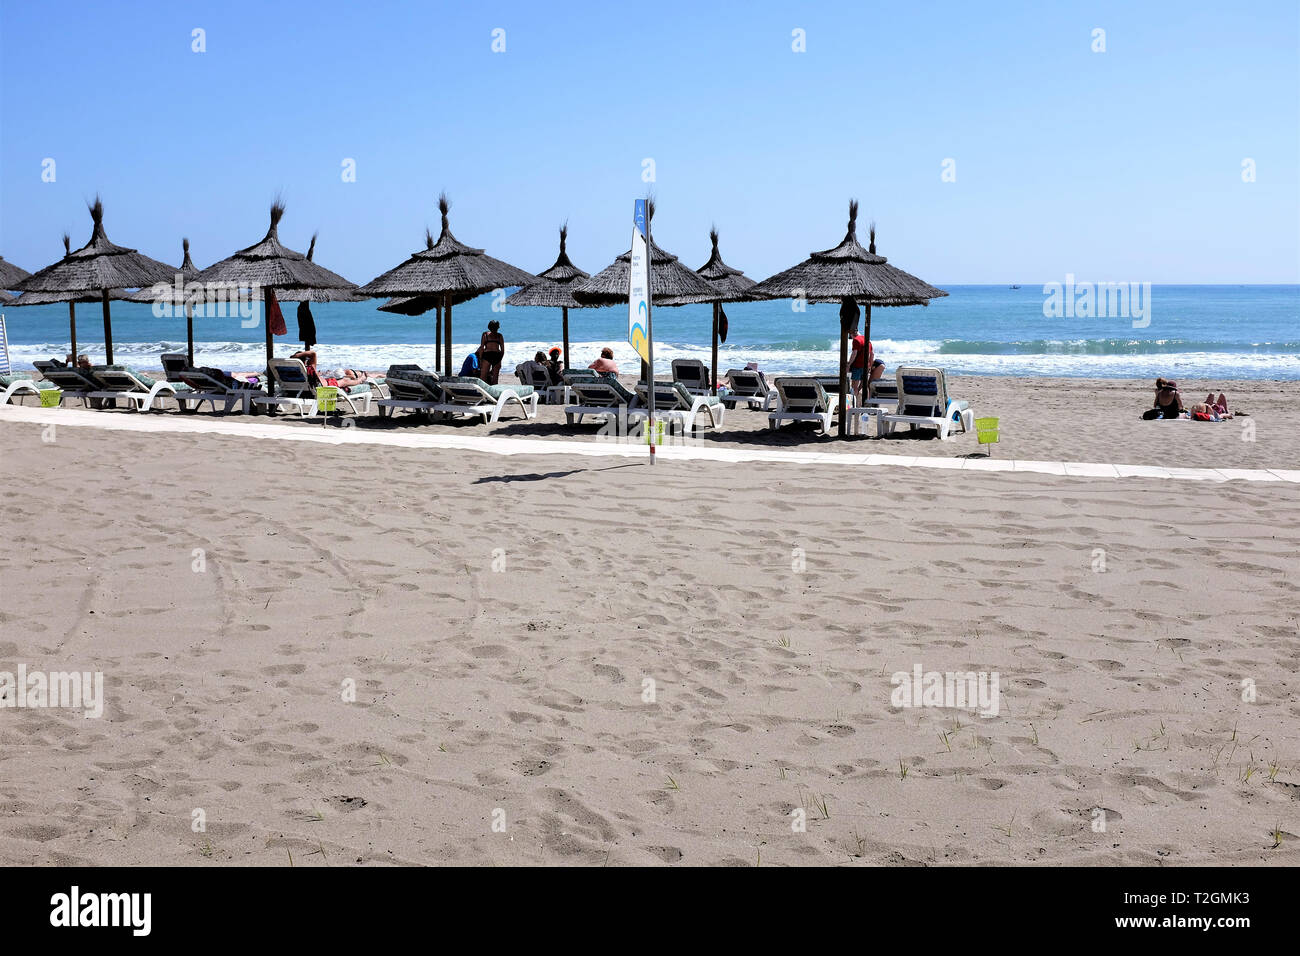 Fuengirola, Costa del Sol, Spain.  March 25, 2019. Holidaymakers enjoying the sunshine on a Mediterranean beach at Fuengerola on the Costa del Sol. - Stock Image